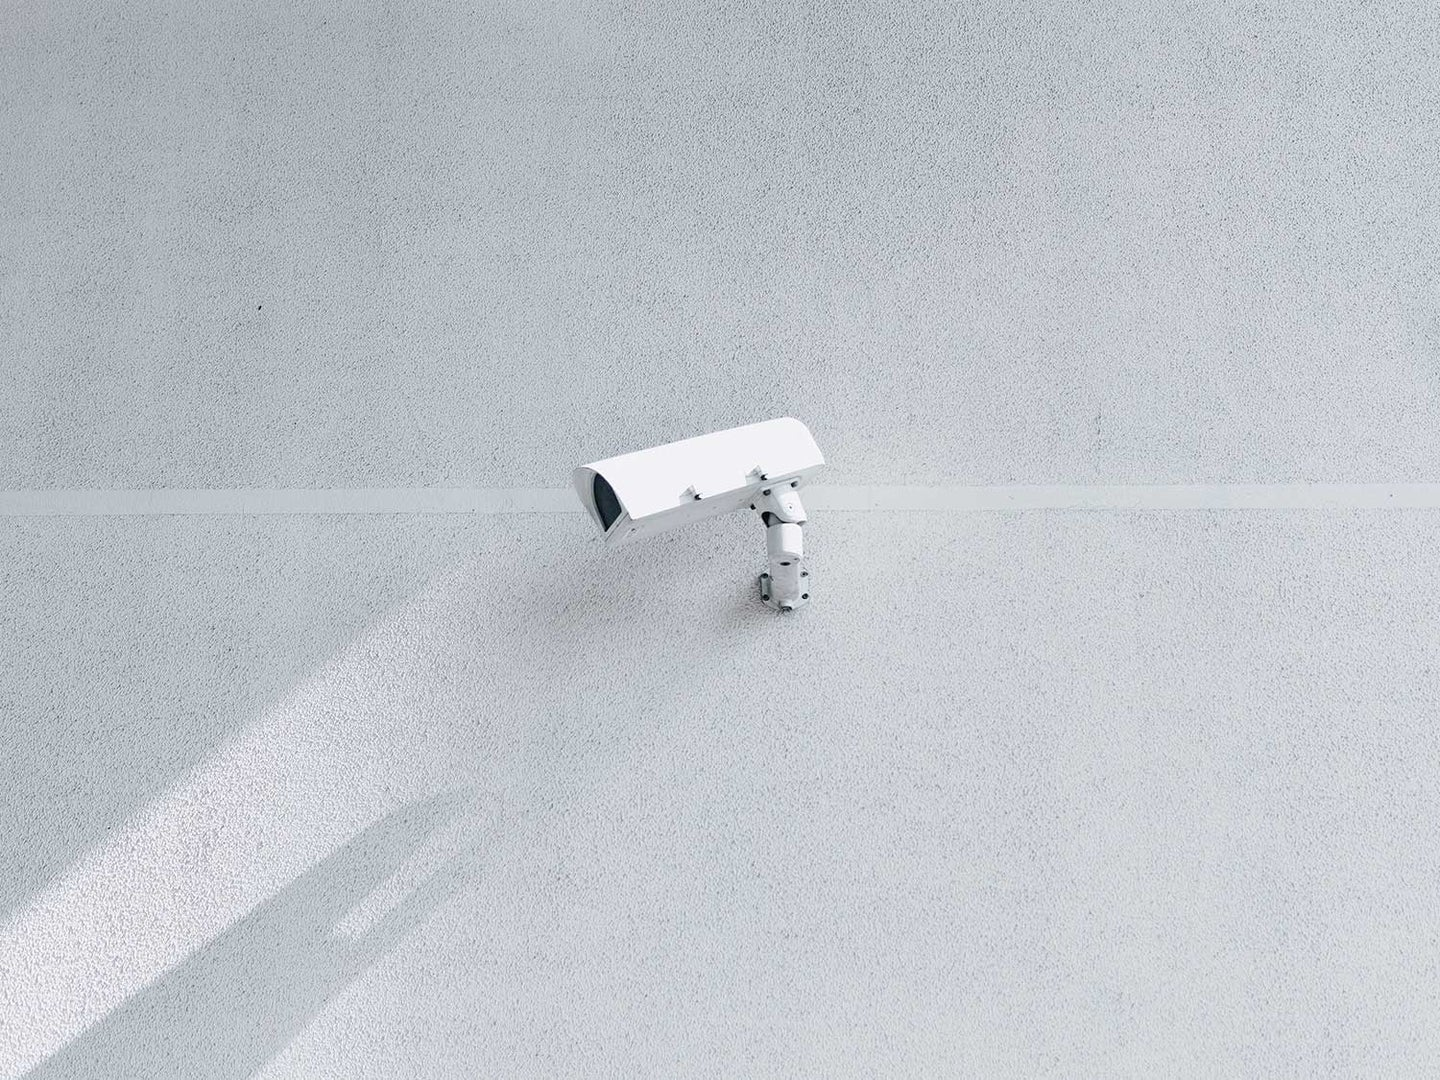 Security camera on wall.